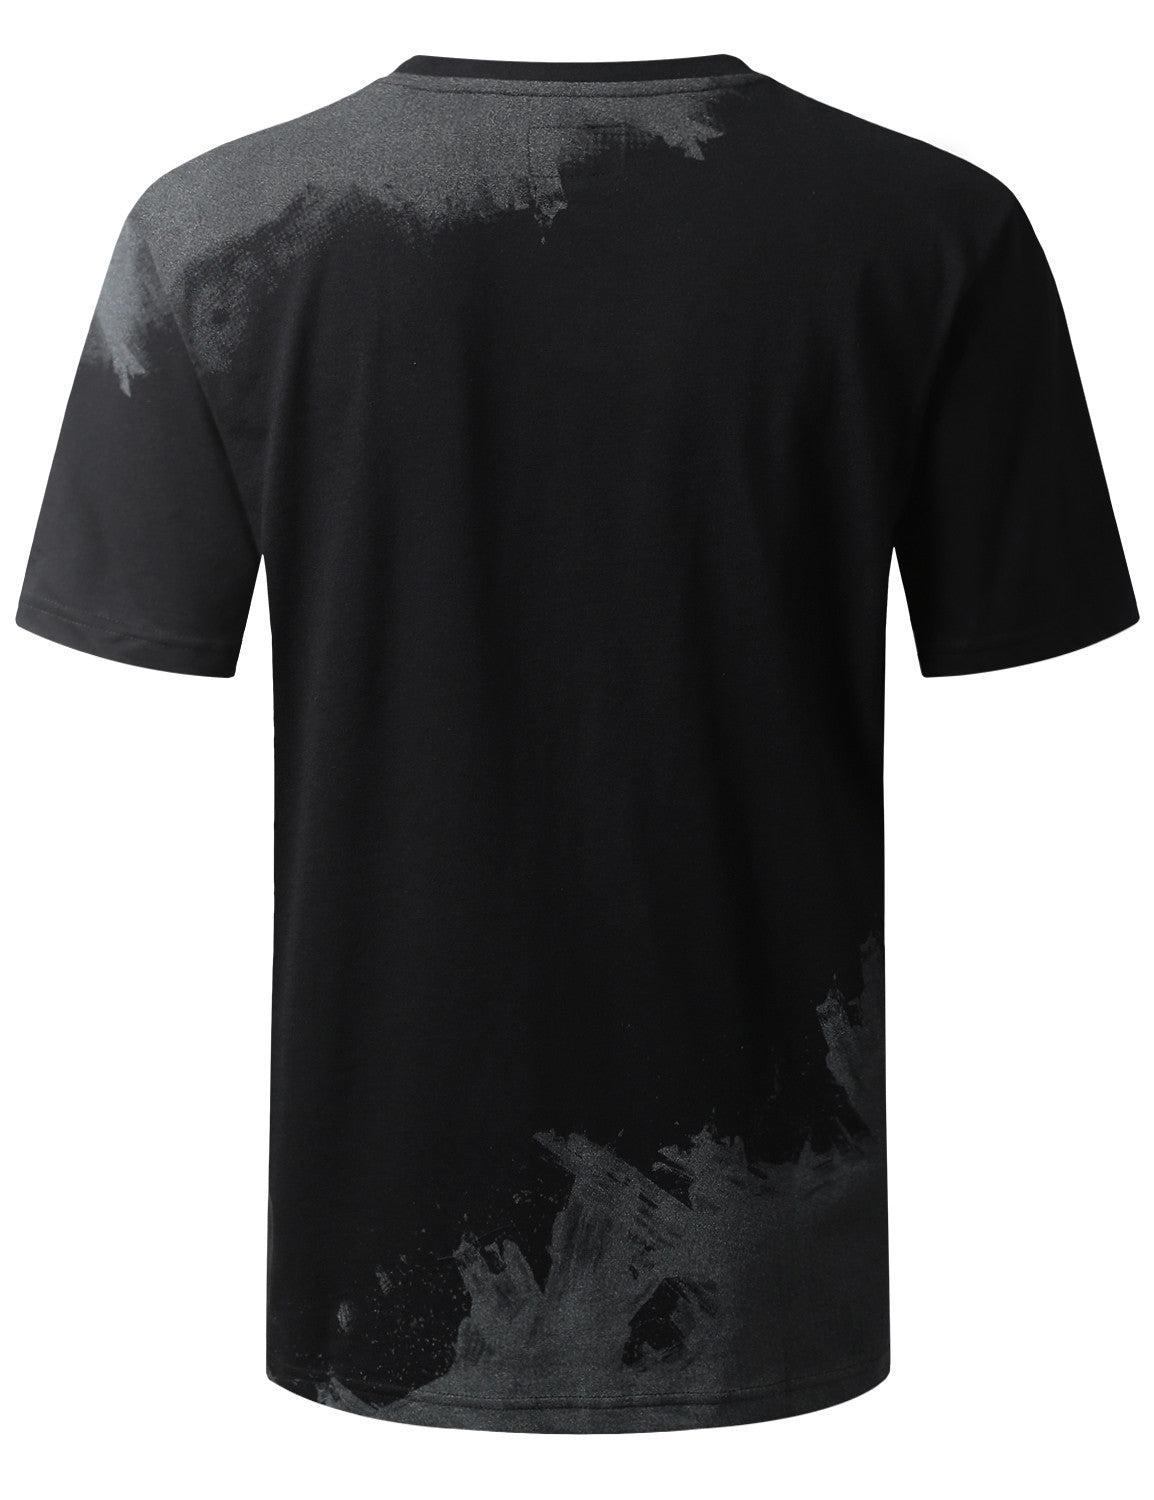 BLACK Fly Graphic Print T-shirt - URBANCREWS